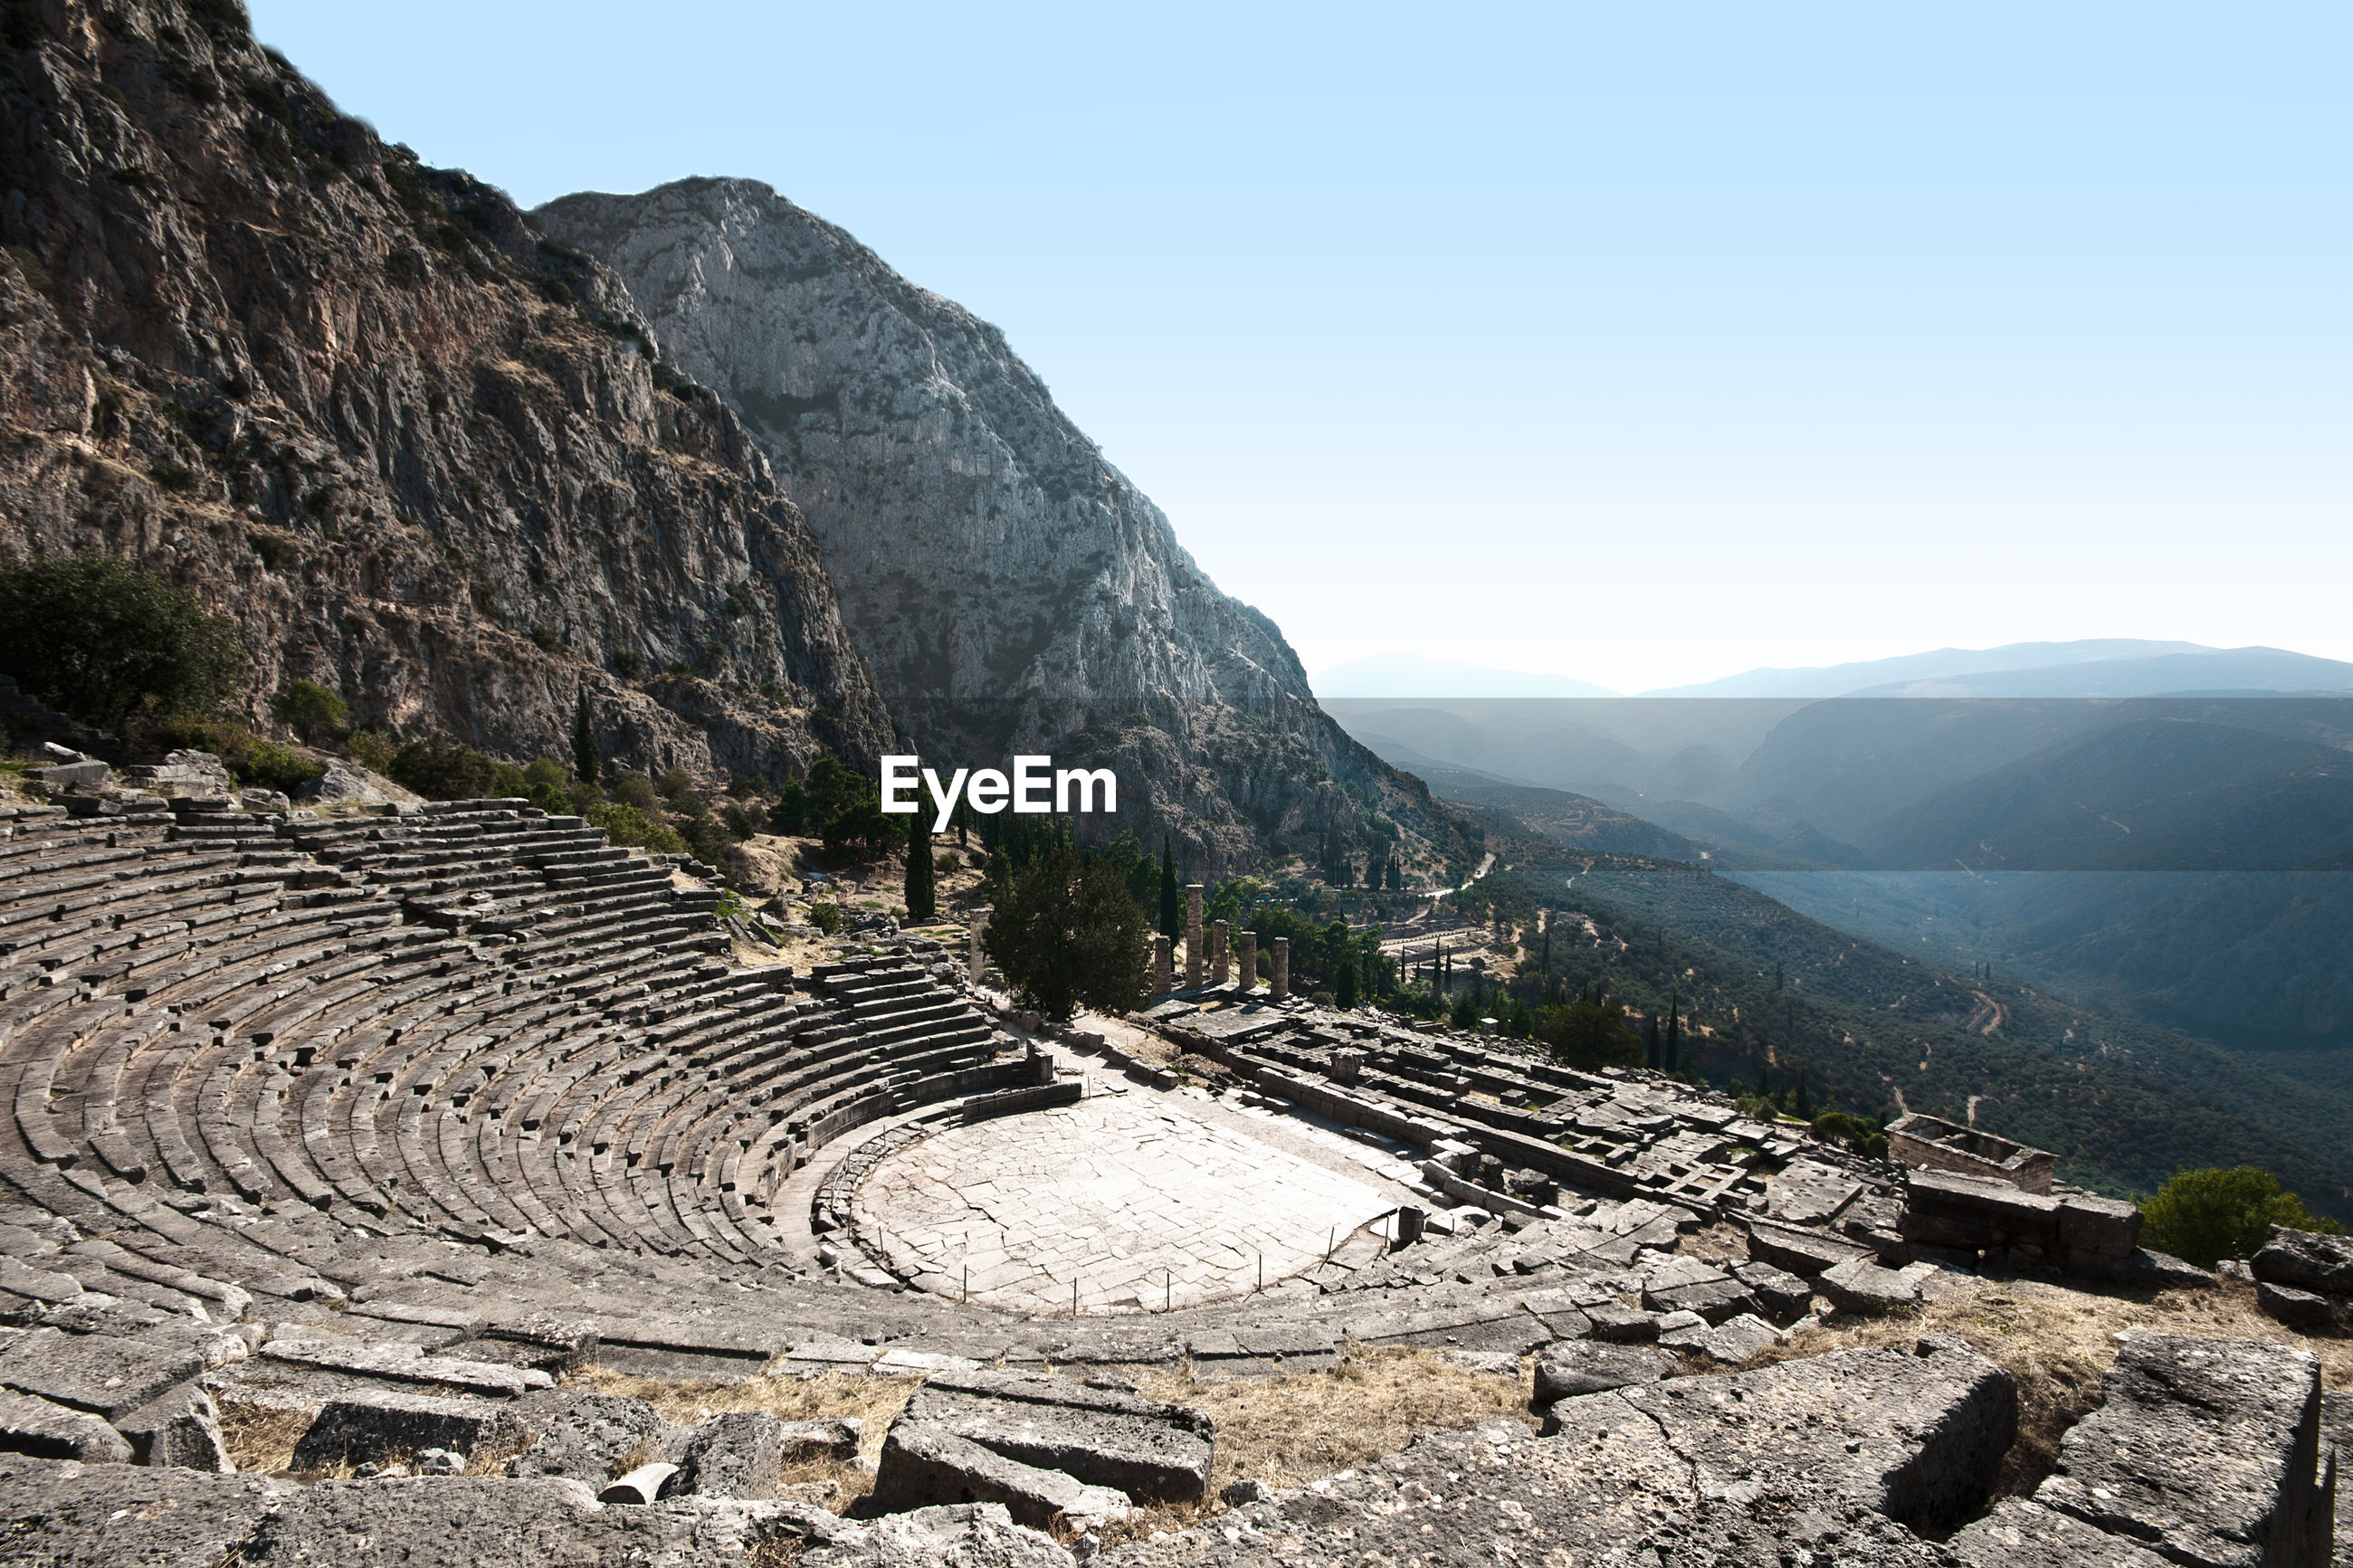 Aerial view of amphitheater against mountain range